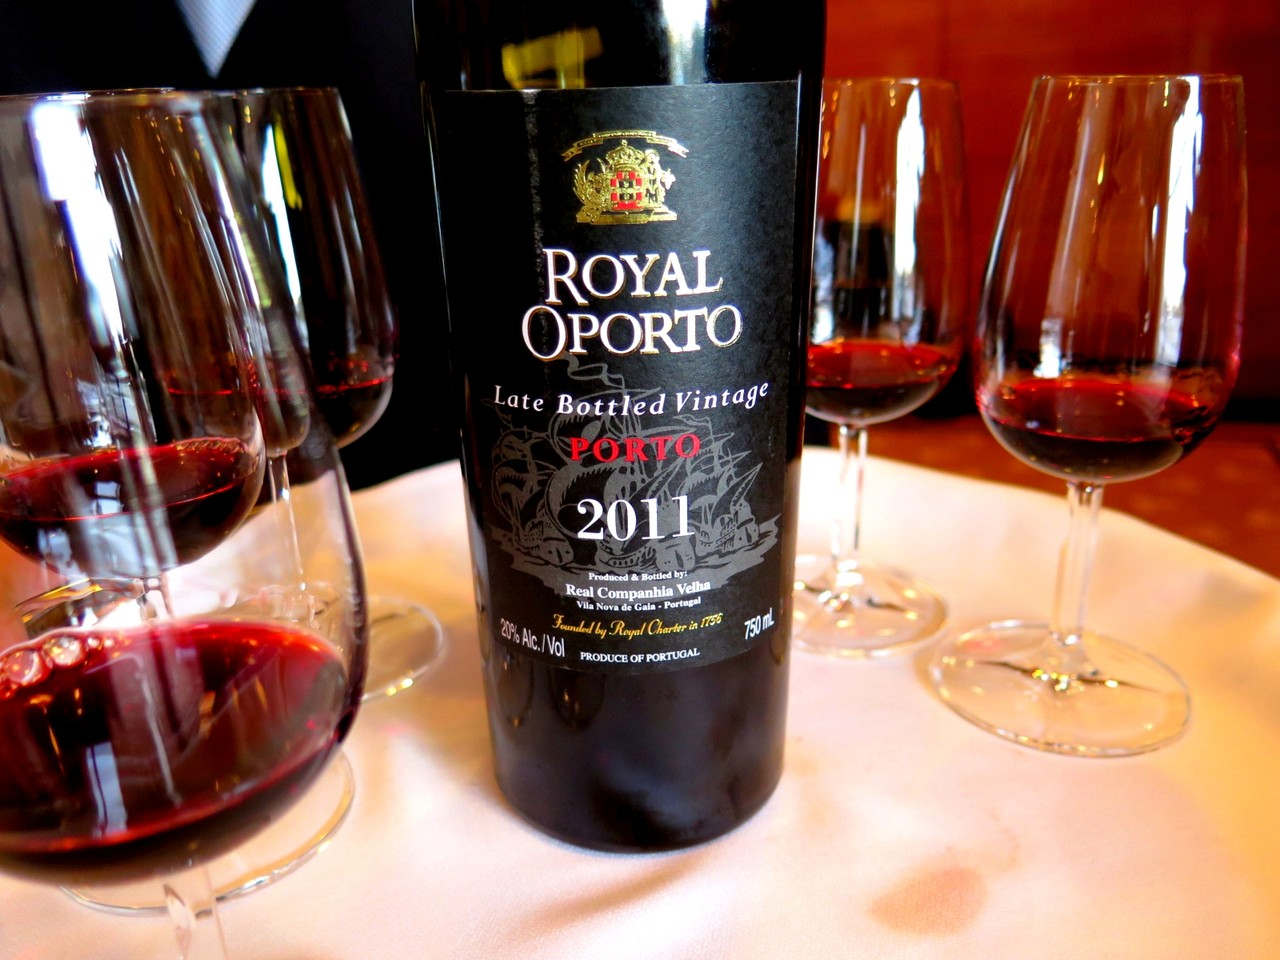 Royal Oporto Late Bottled Vintage 2011